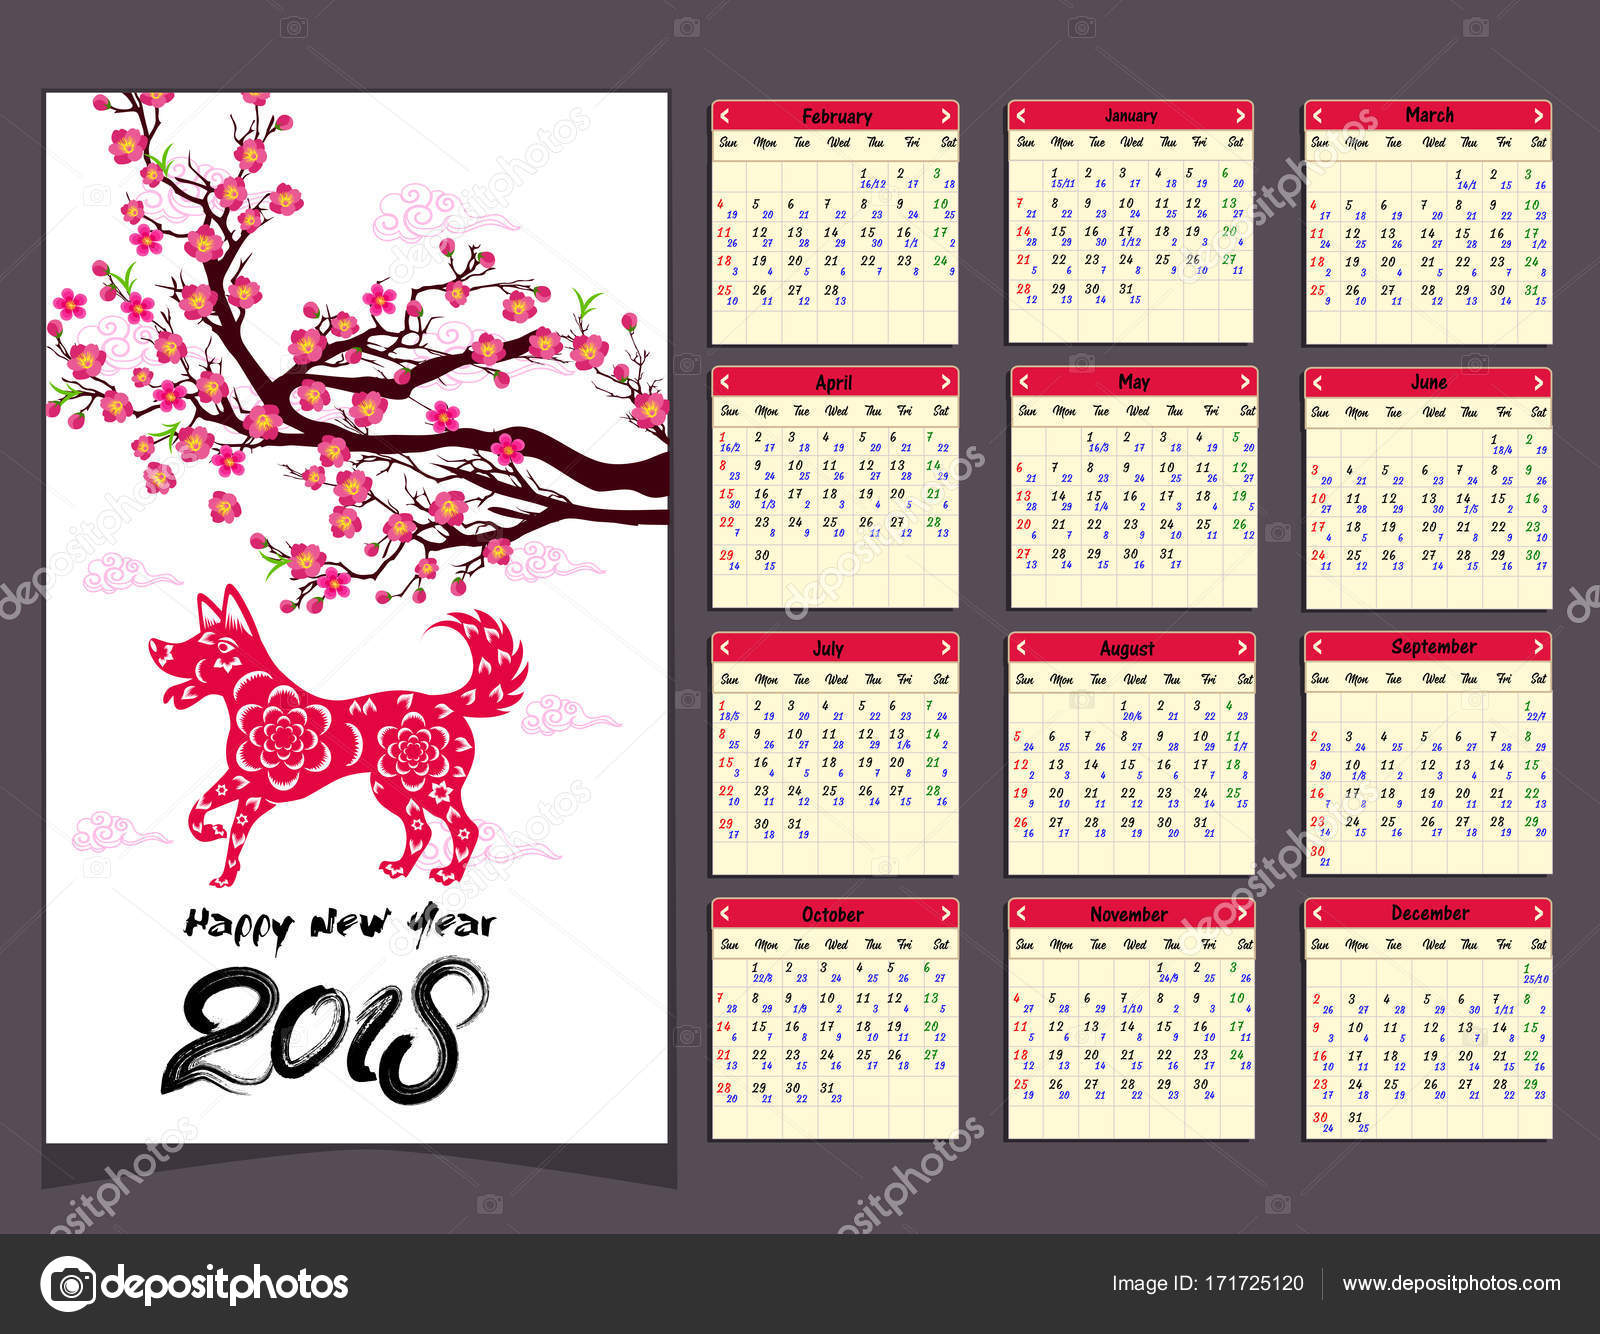 Lunar Calendar, Chinese Calendar For Happy New Year 2018